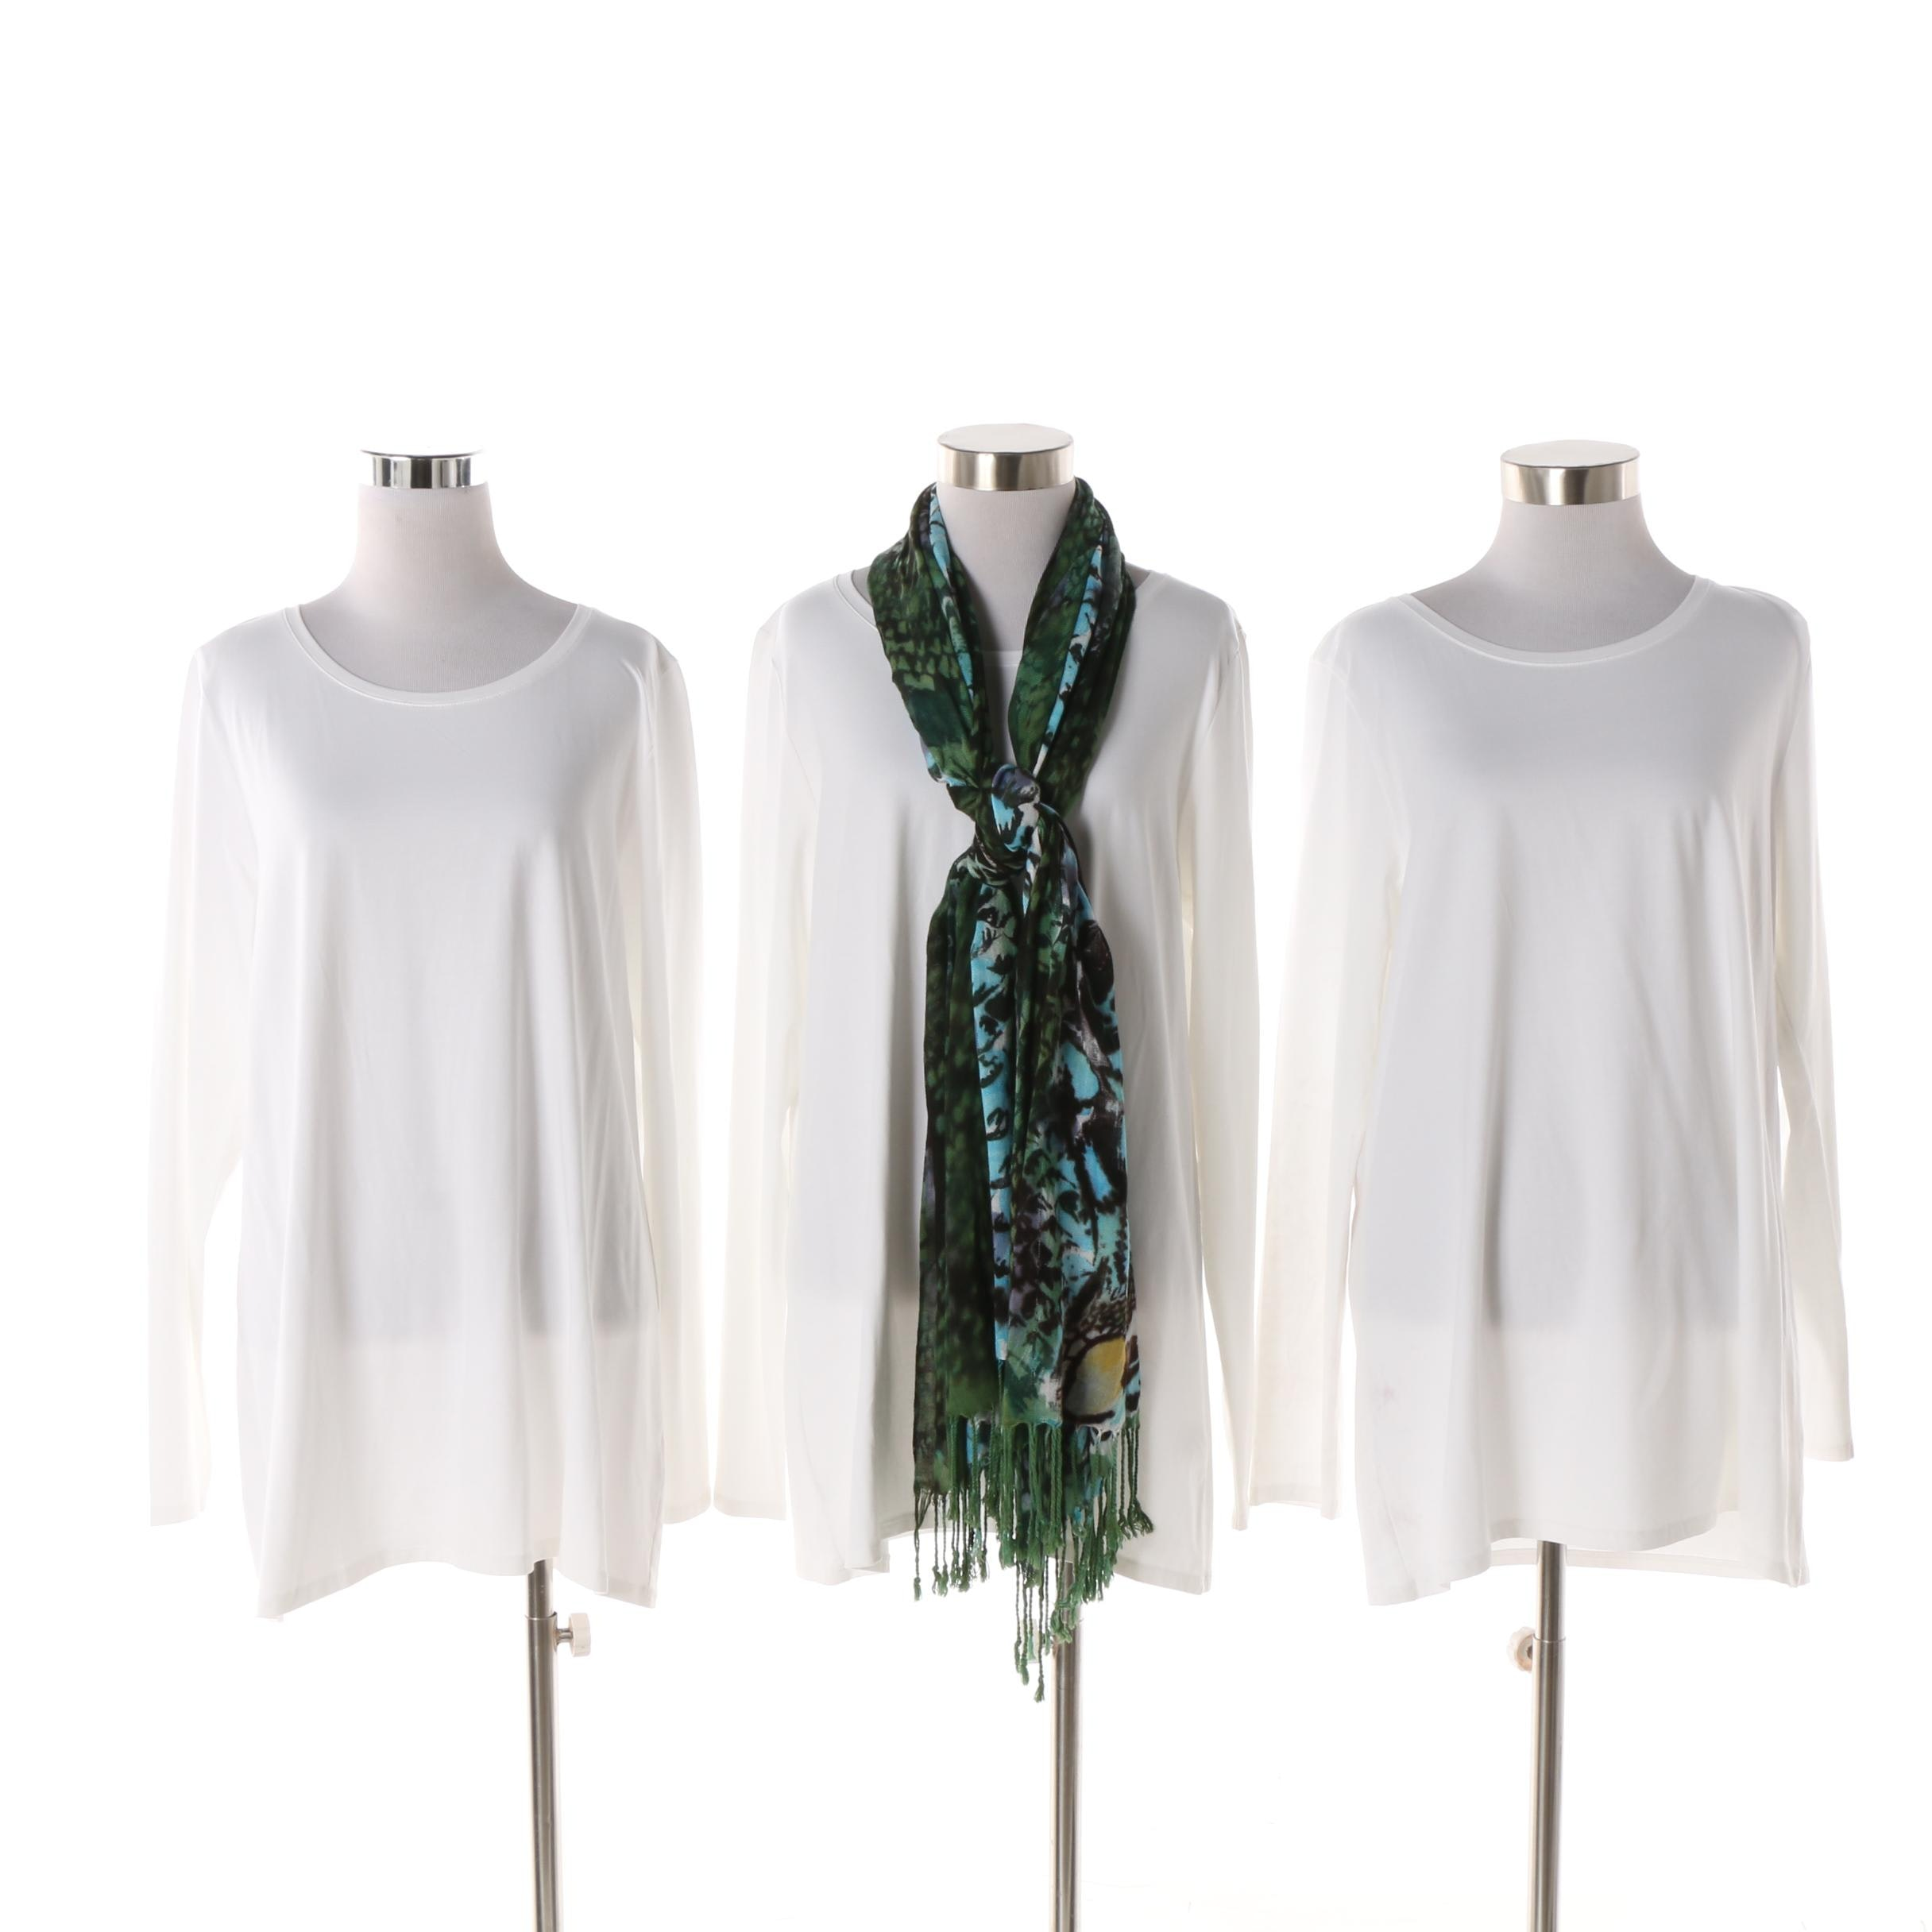 J. Jill White Stretch Cotton Tunic Tees and From The Heart Scarf